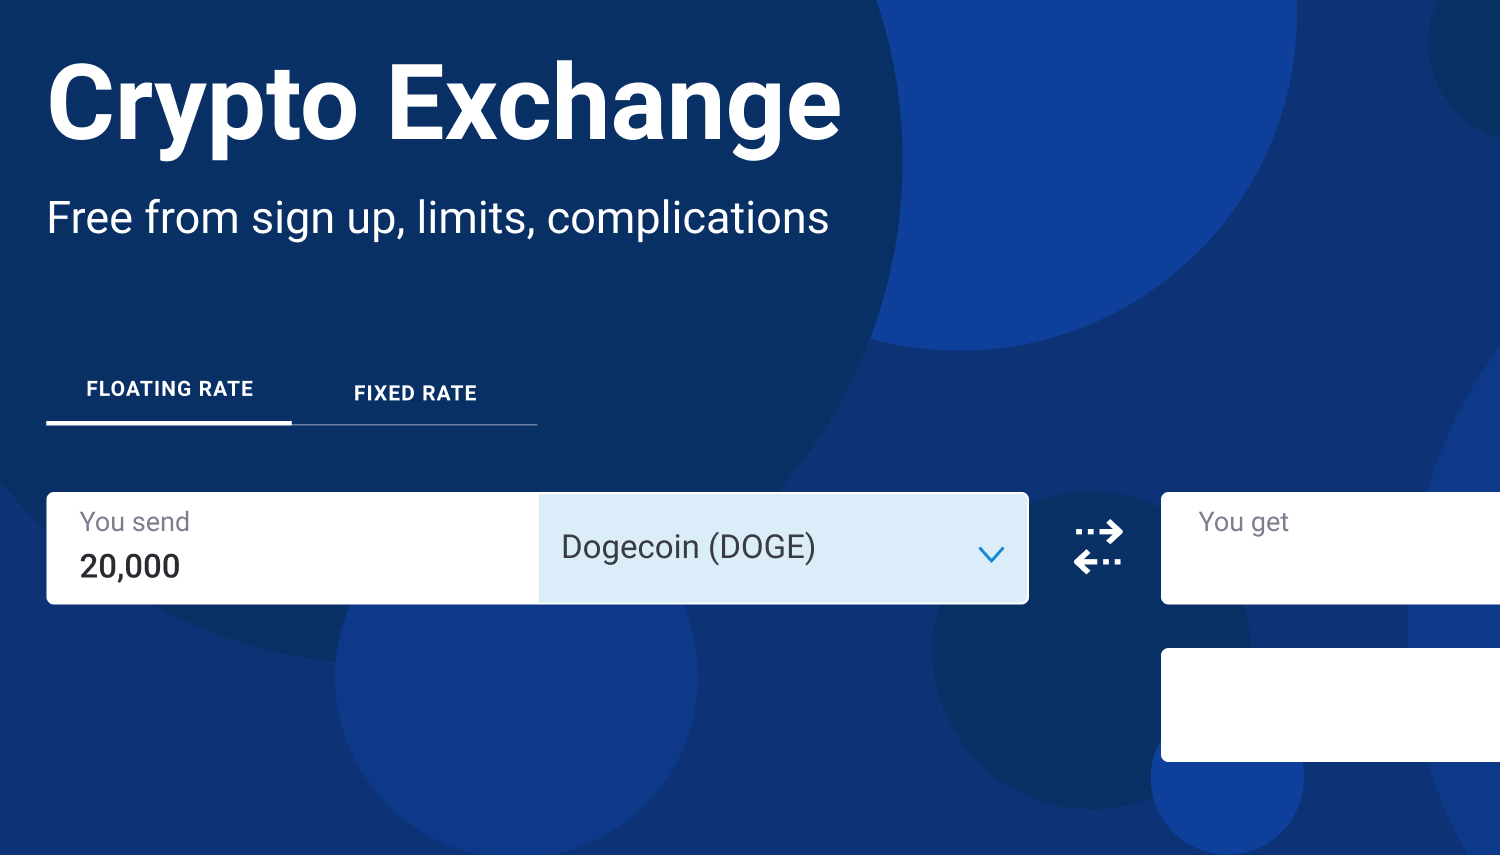 enter the amount of Dogecoin to exchange